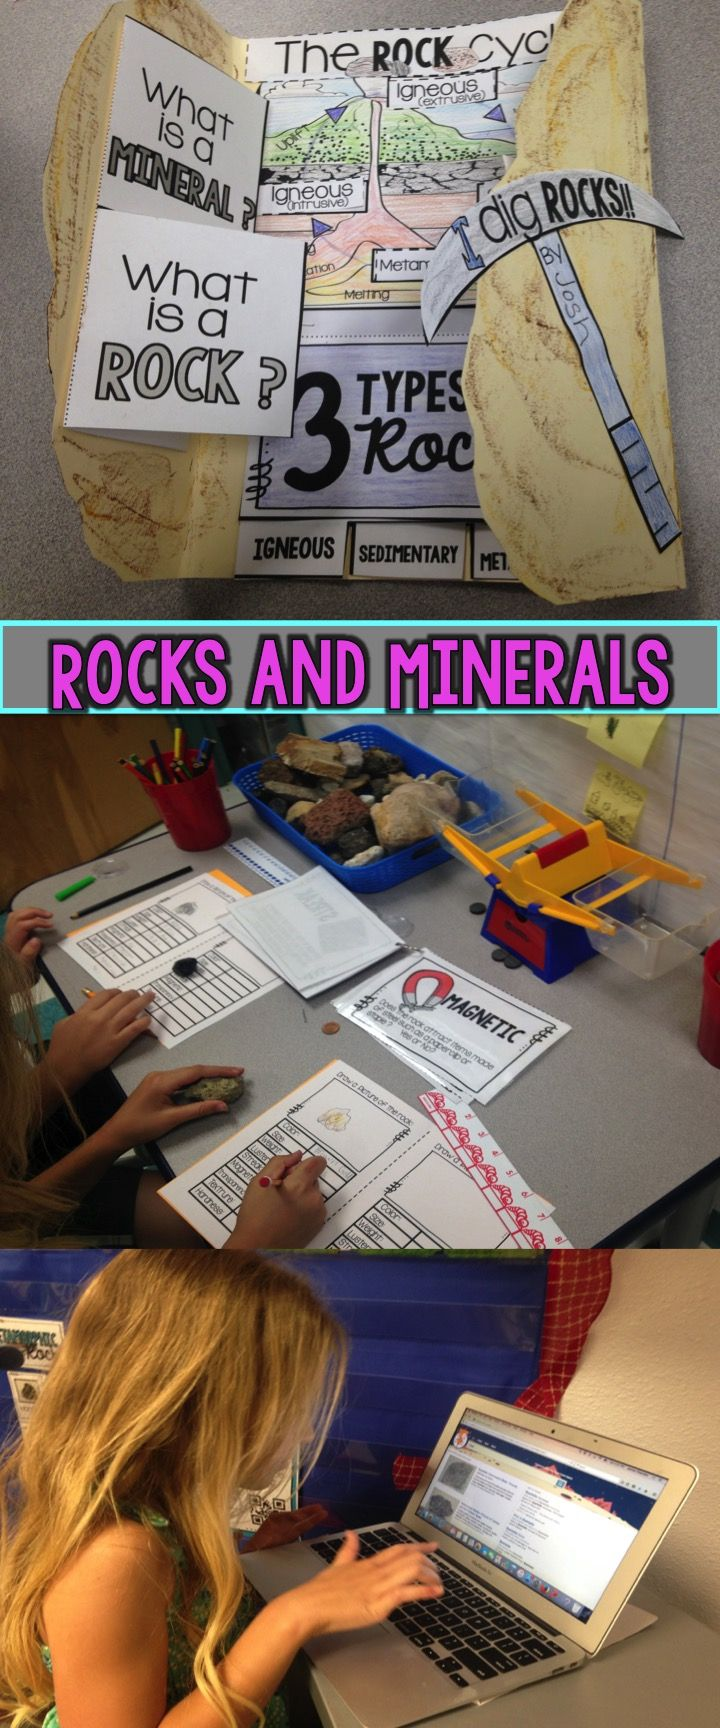 Lesson Five: The Earth, Rocks and Minerals